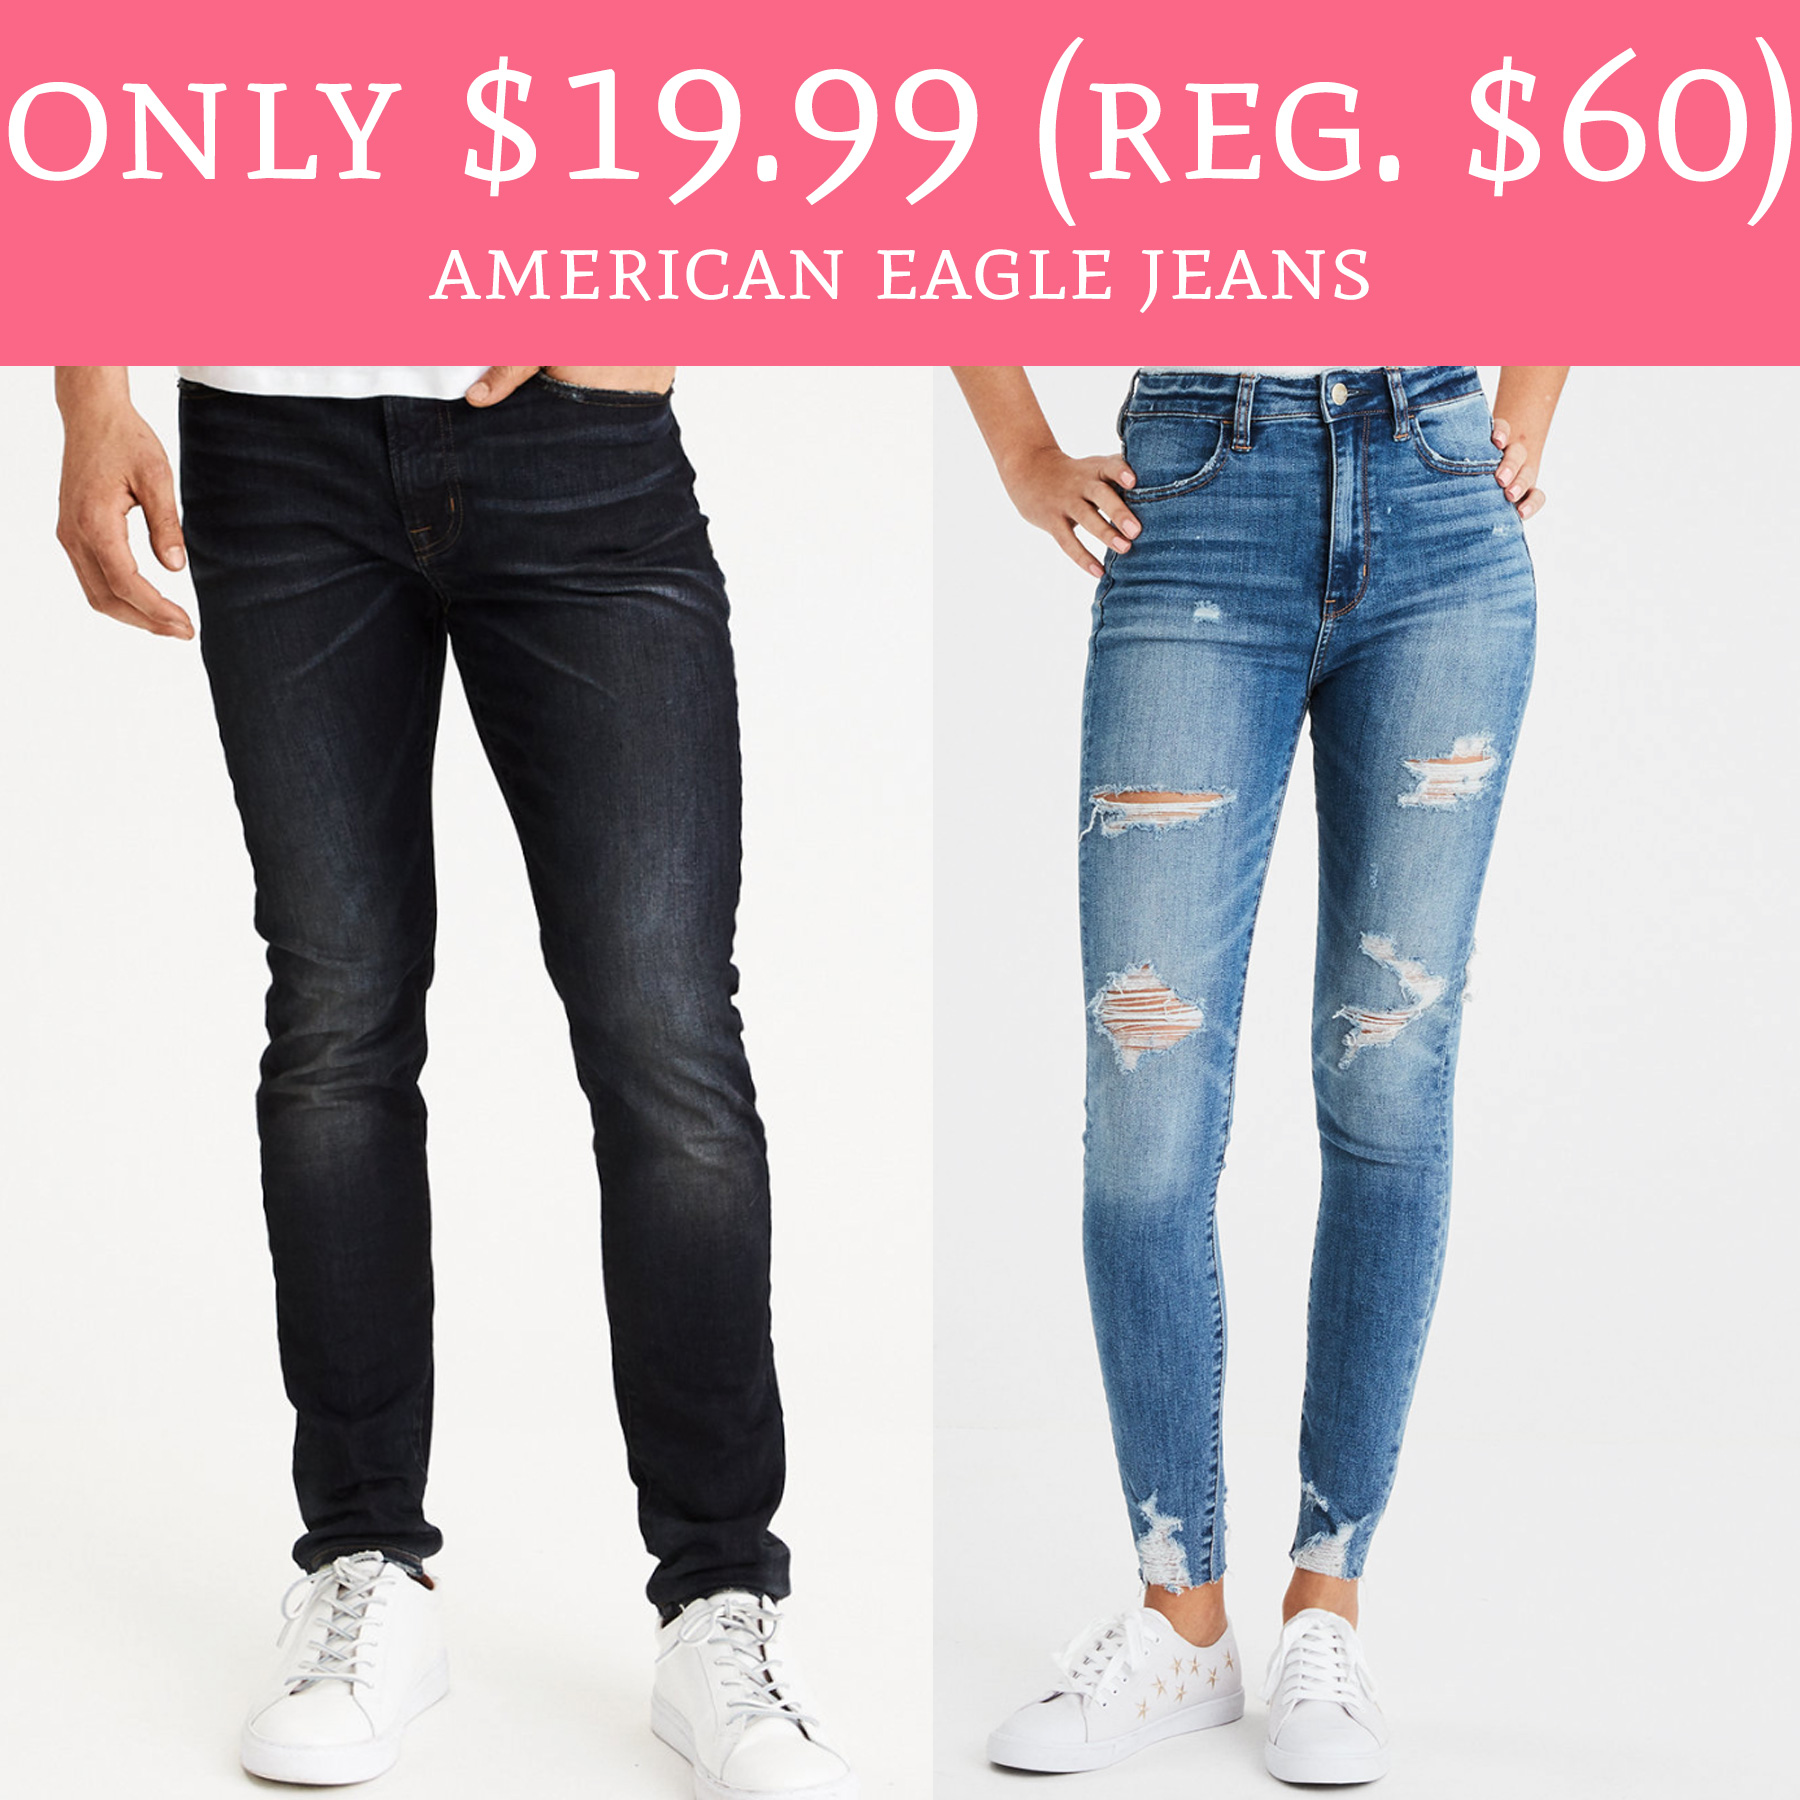 Only $19 99 (Regular $60) American Eagle Jeans - Deal